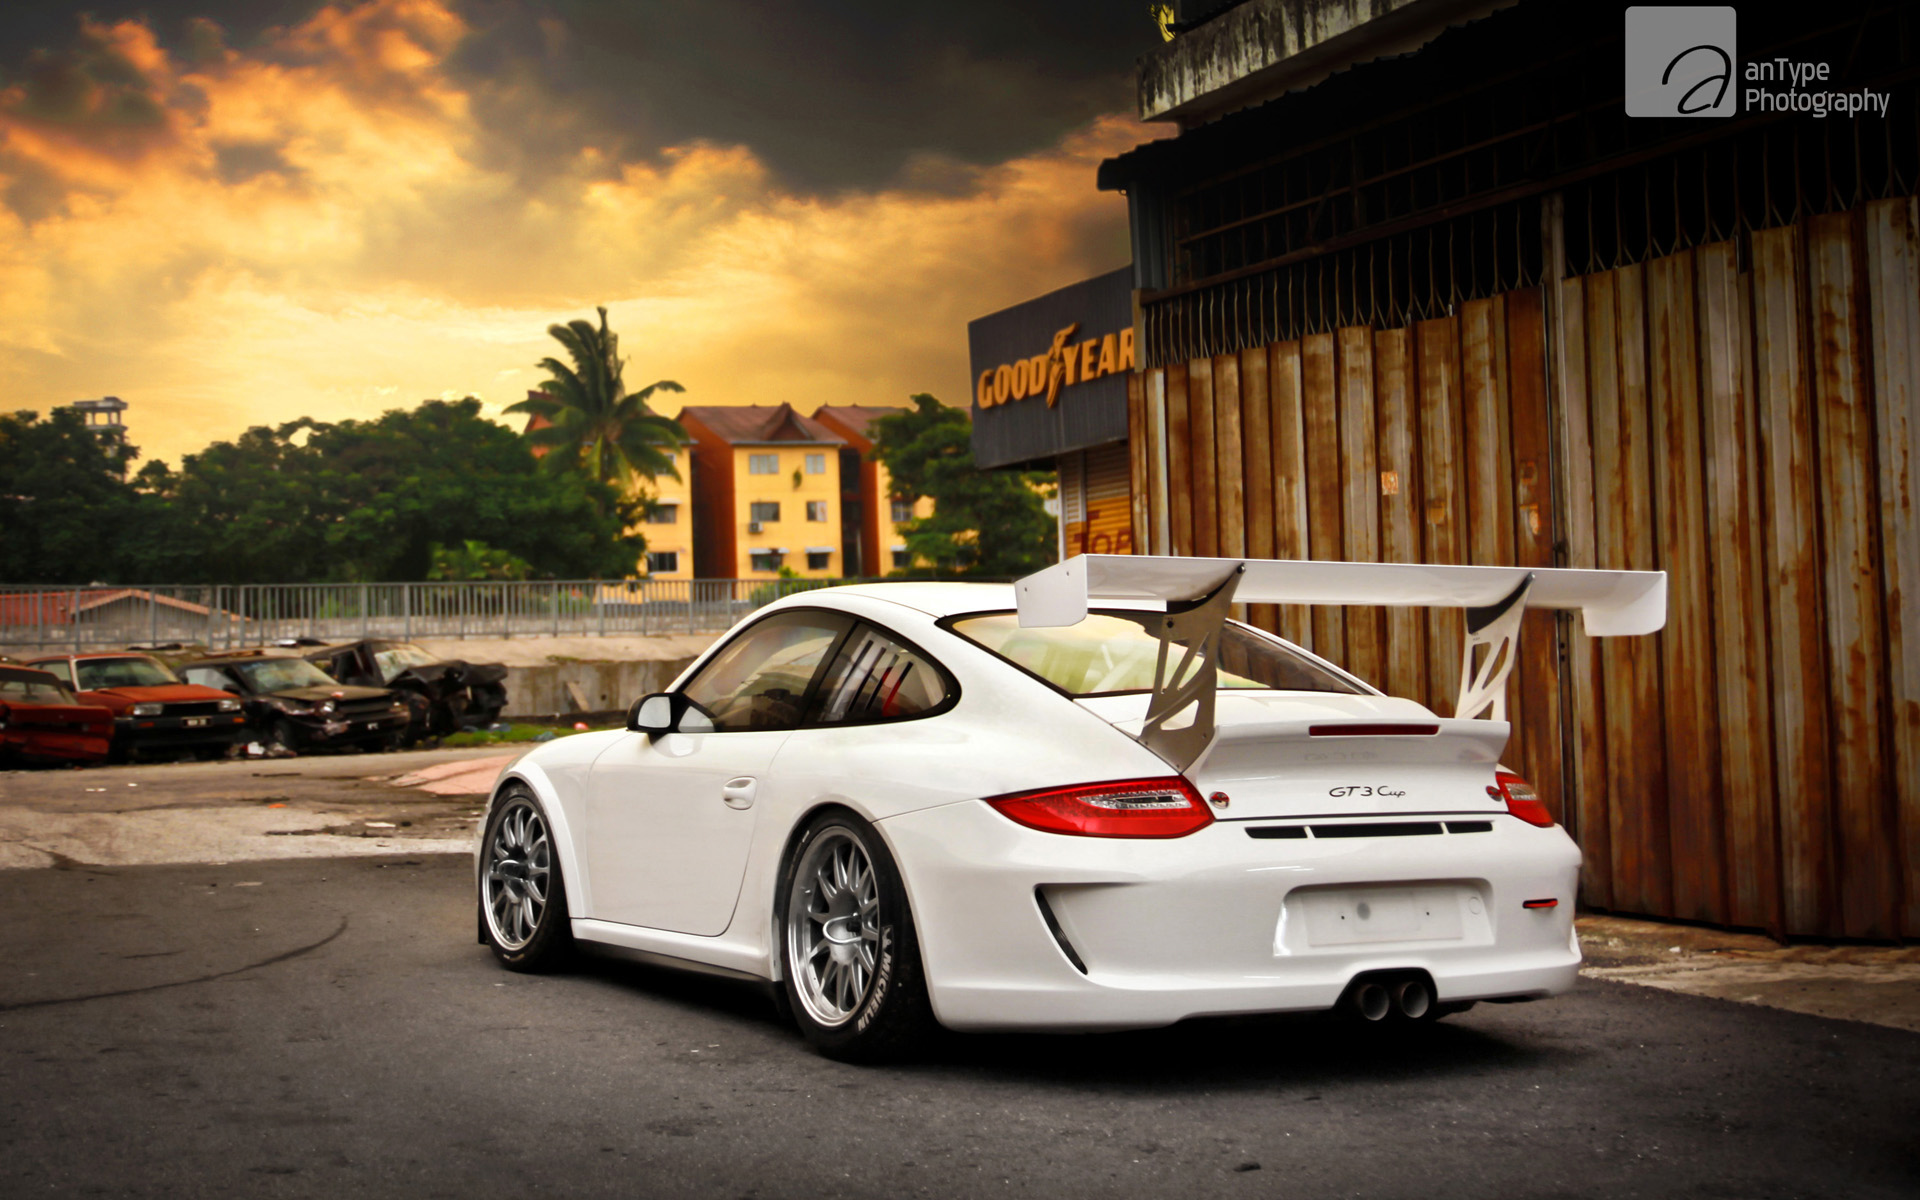 Porsche Gt3 Cup Wallpaper Hd Car Wallpapers